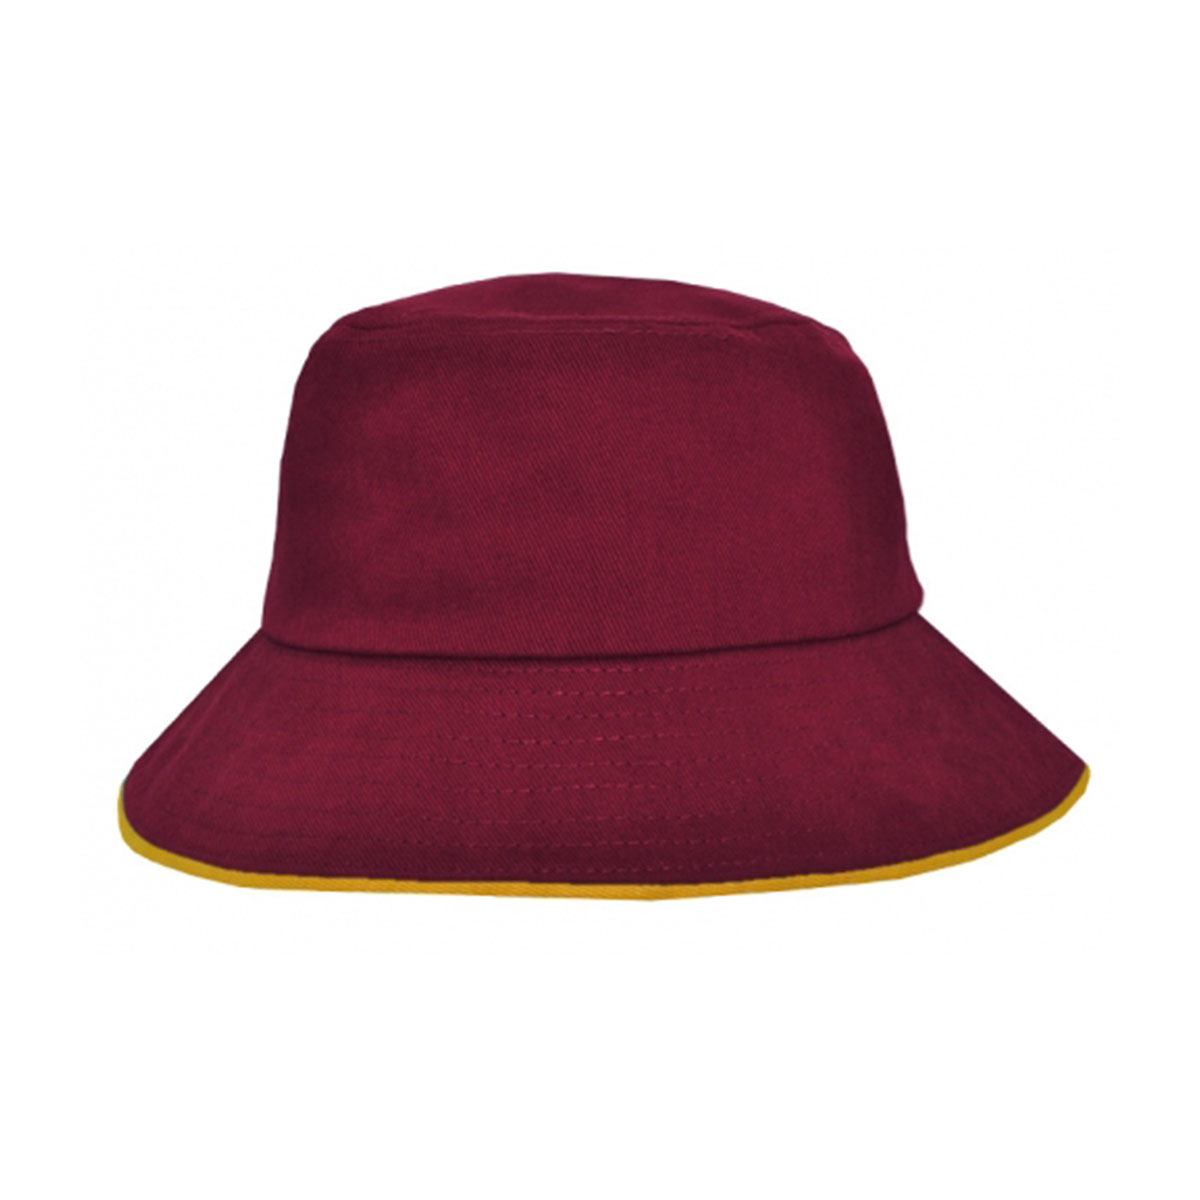 Bucket Hat Sandwich Design-Maroon / Gold